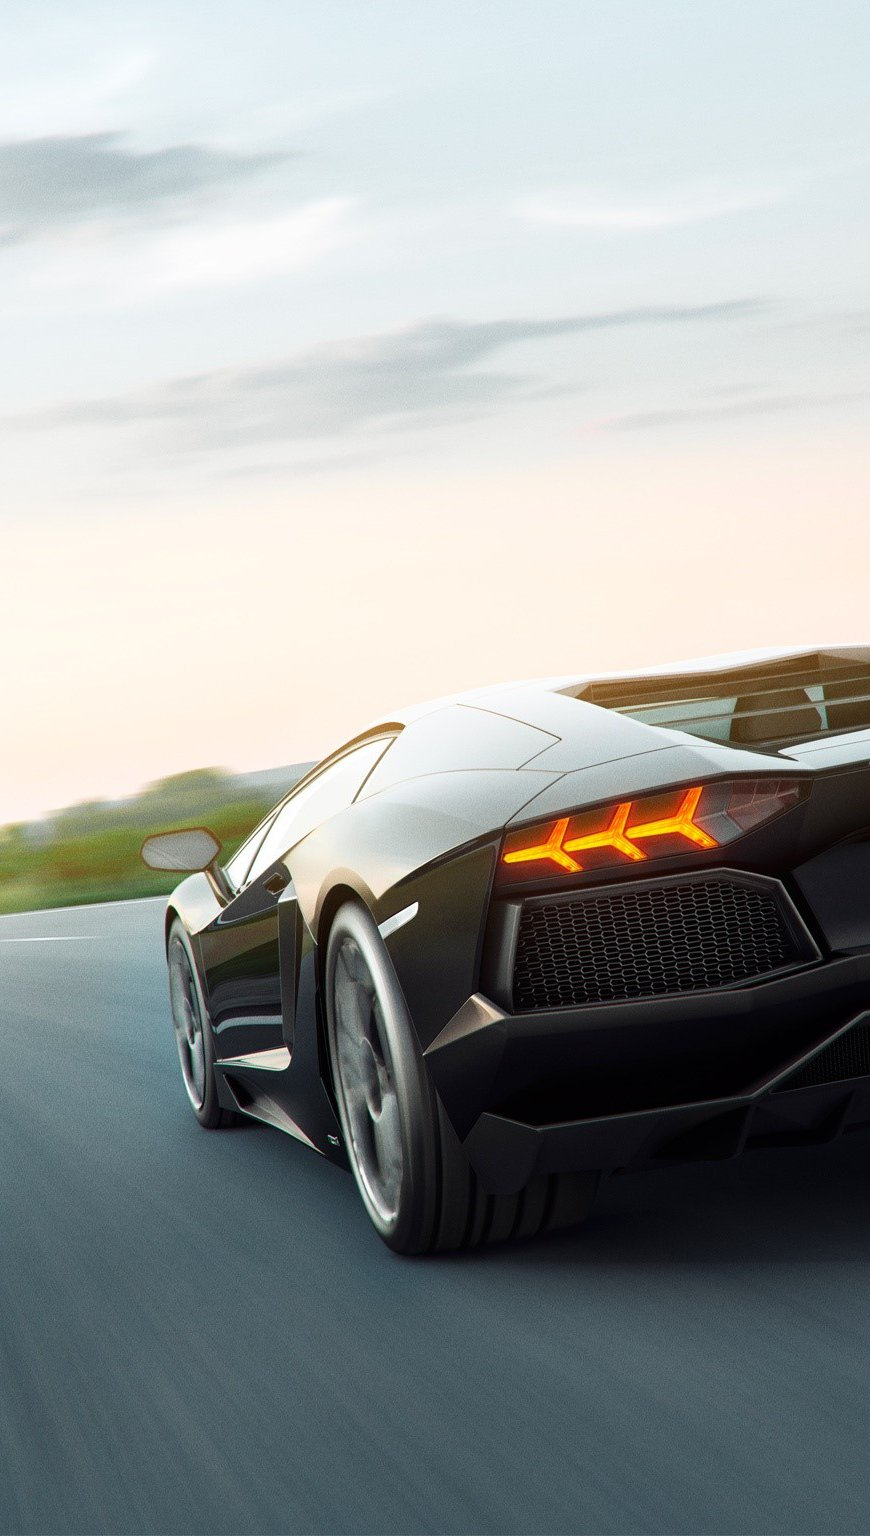 Wallpaper Lamborghini Aventador art Vertical